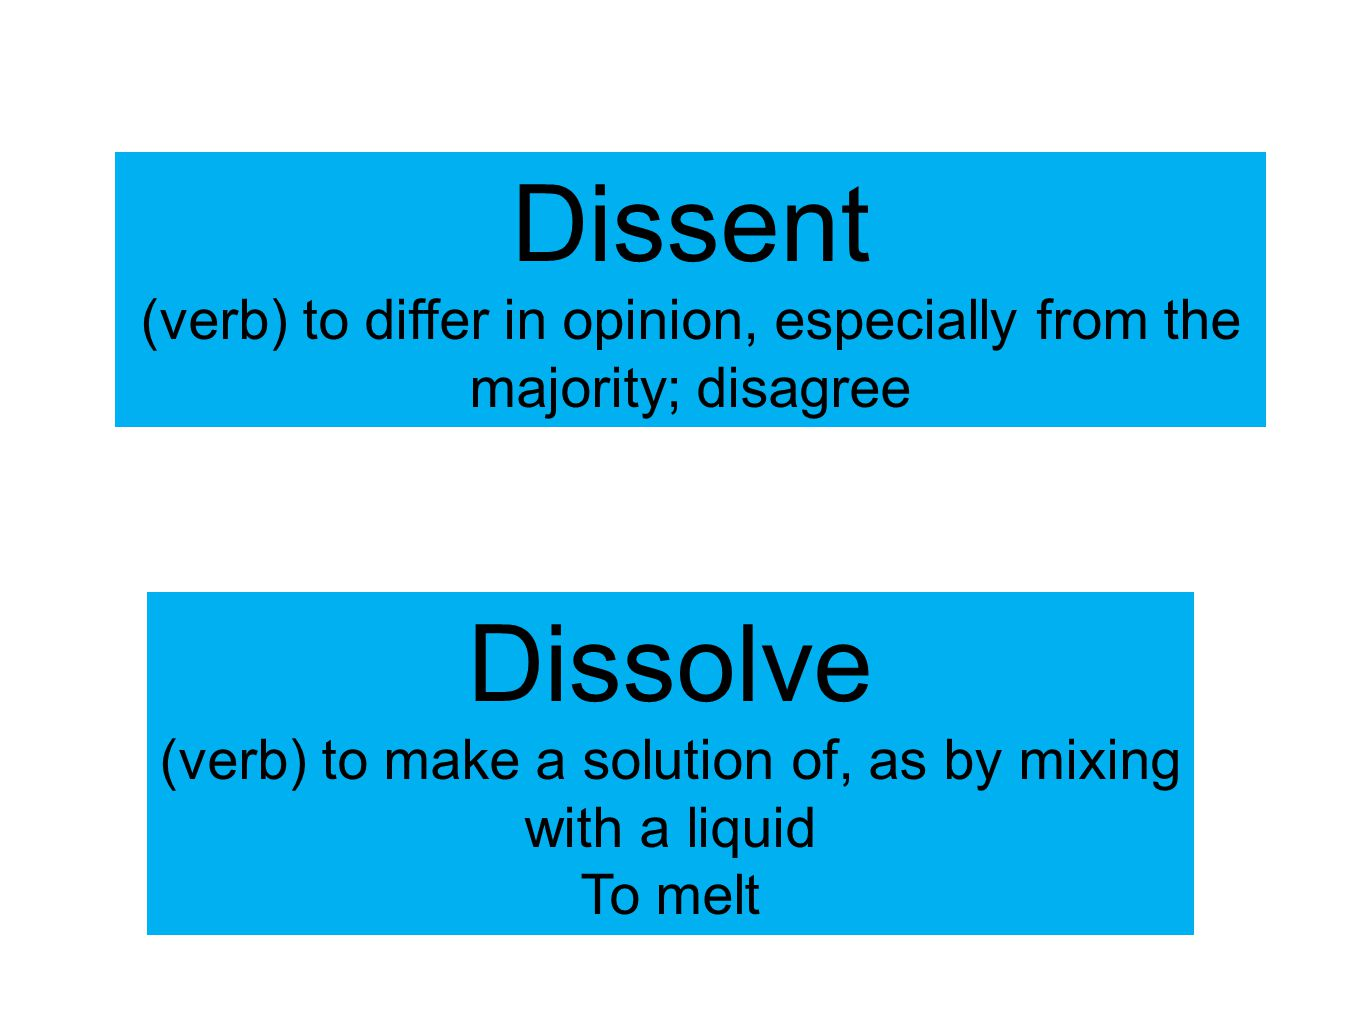 Dissent (verb) to differ in opinion, especially from the majority; disagree Dissolve (verb) to make a solution of, as by mixing with a liquid To melt